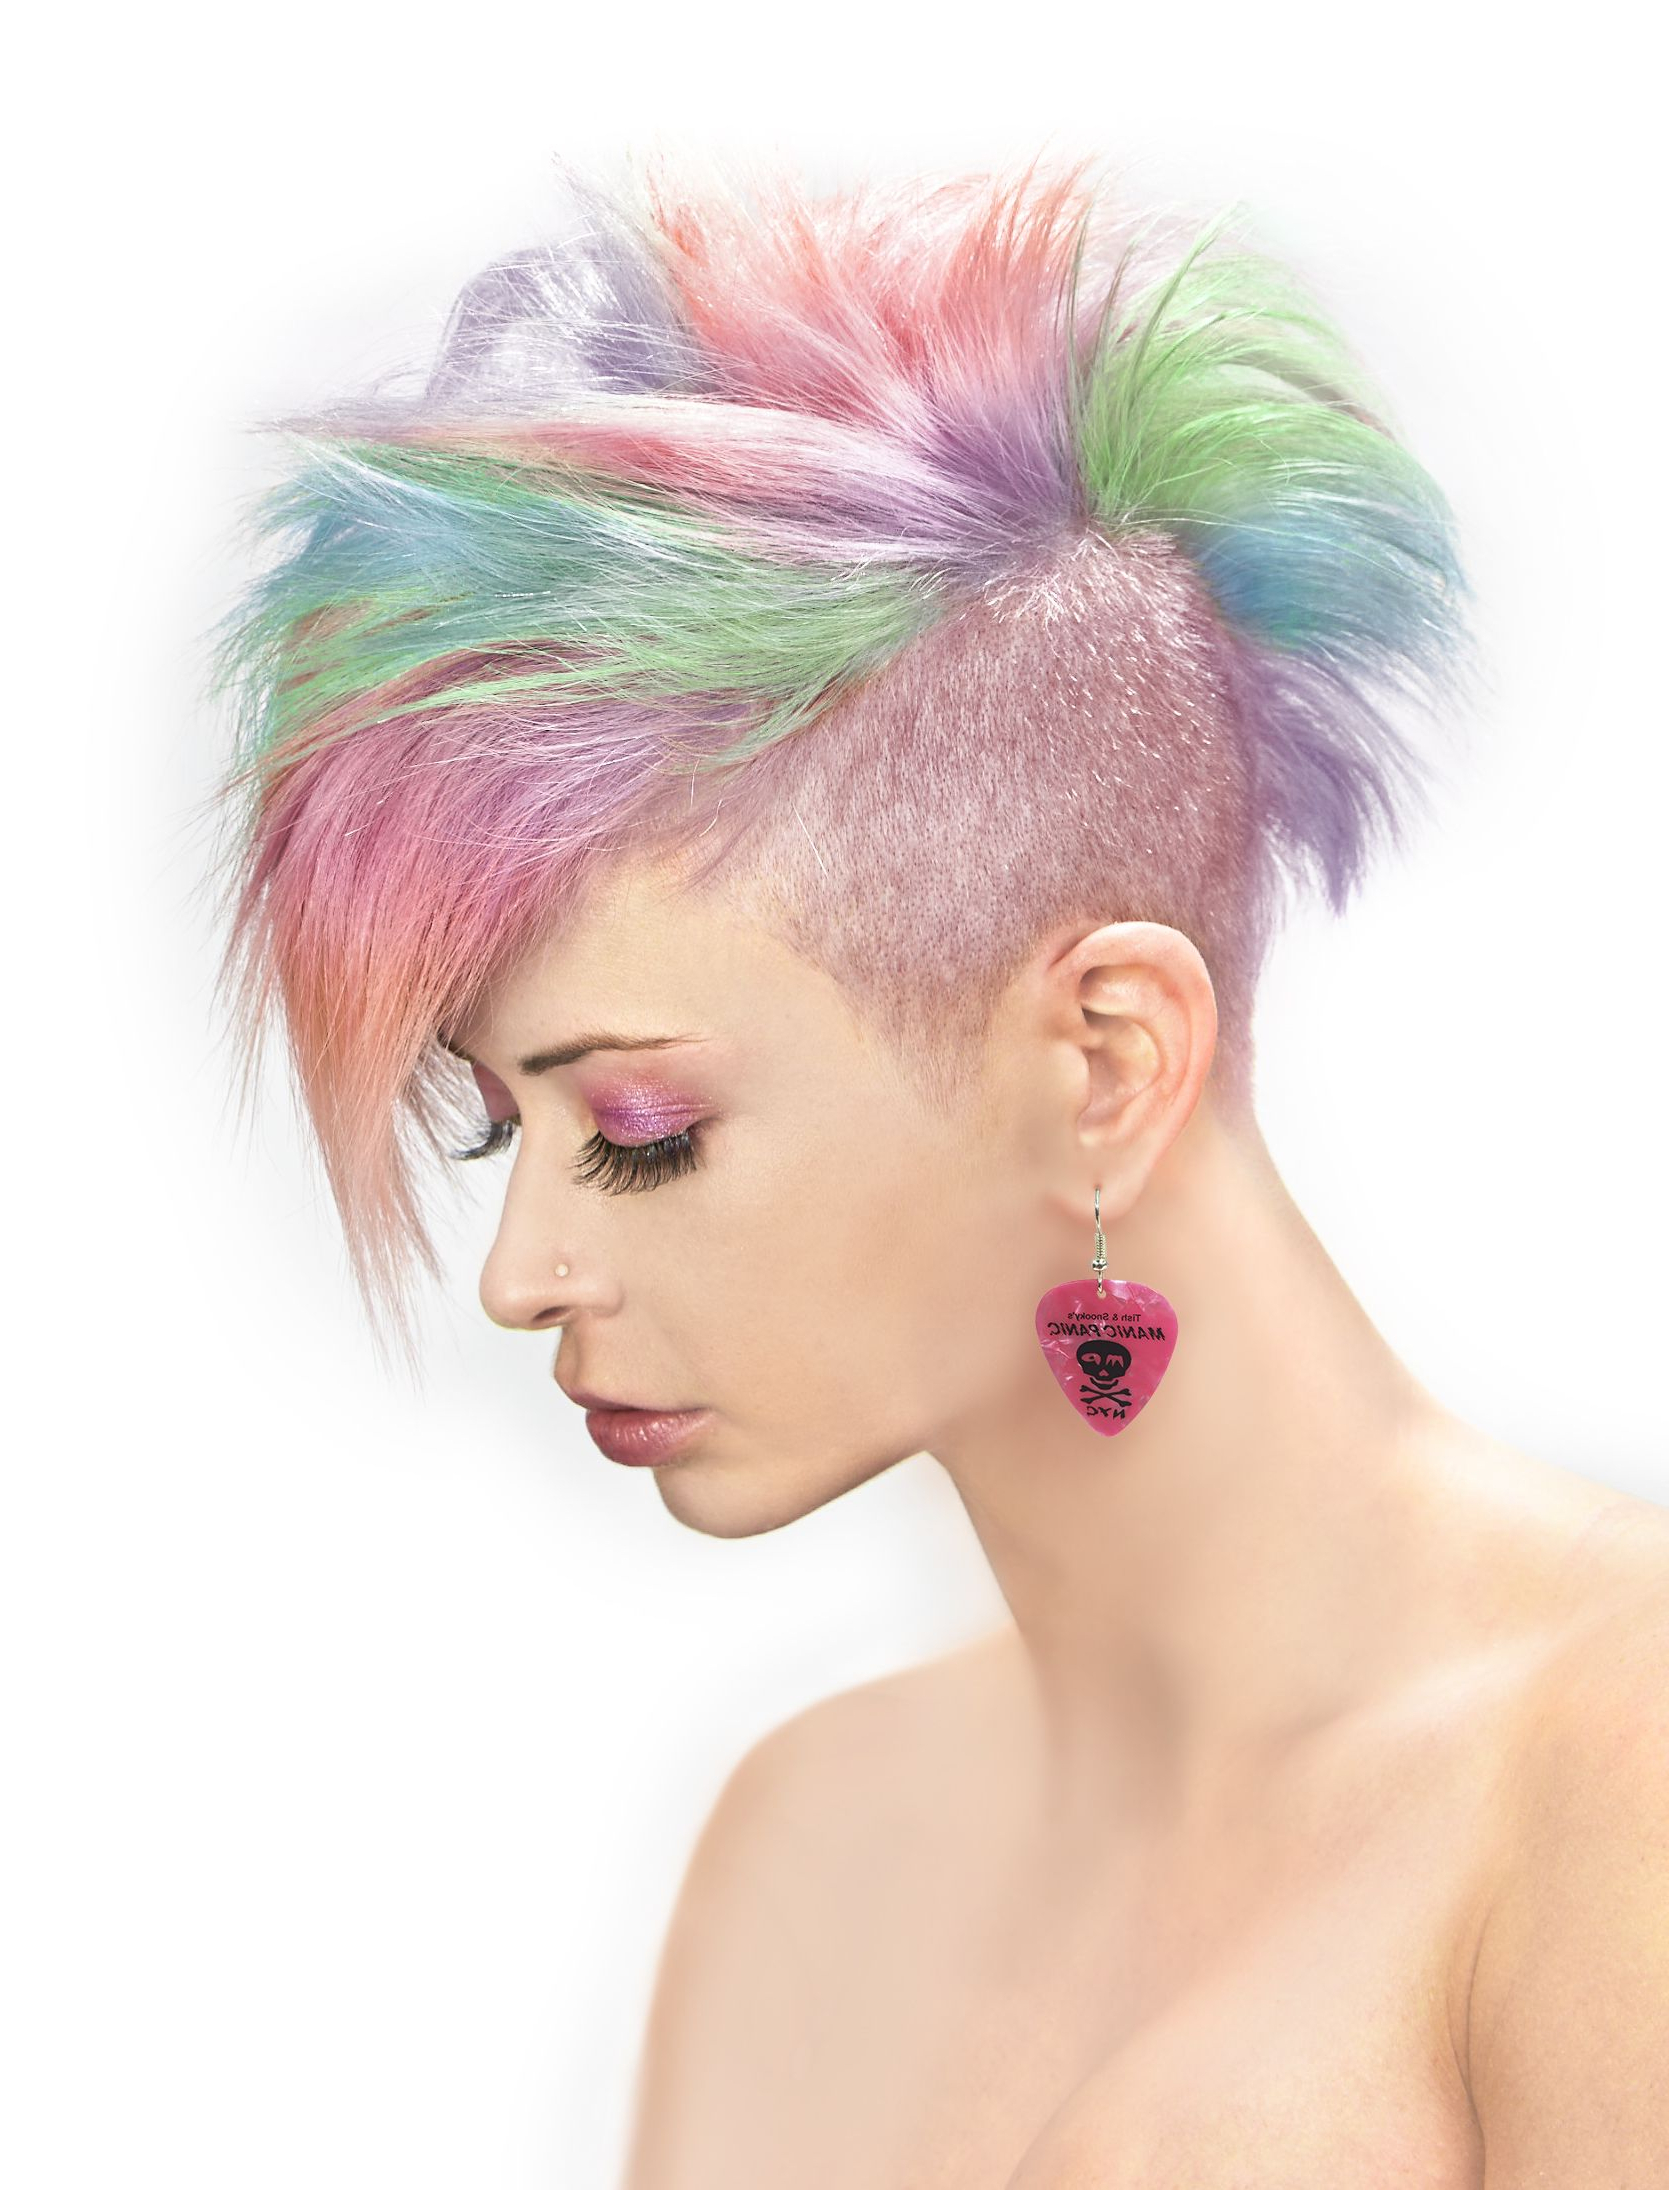 Manic Panic Fleurs Du Mal Creamtones Perfect Pastel Pink Cream In Recent Funky Pink Mohawk Hairstyles (View 9 of 20)